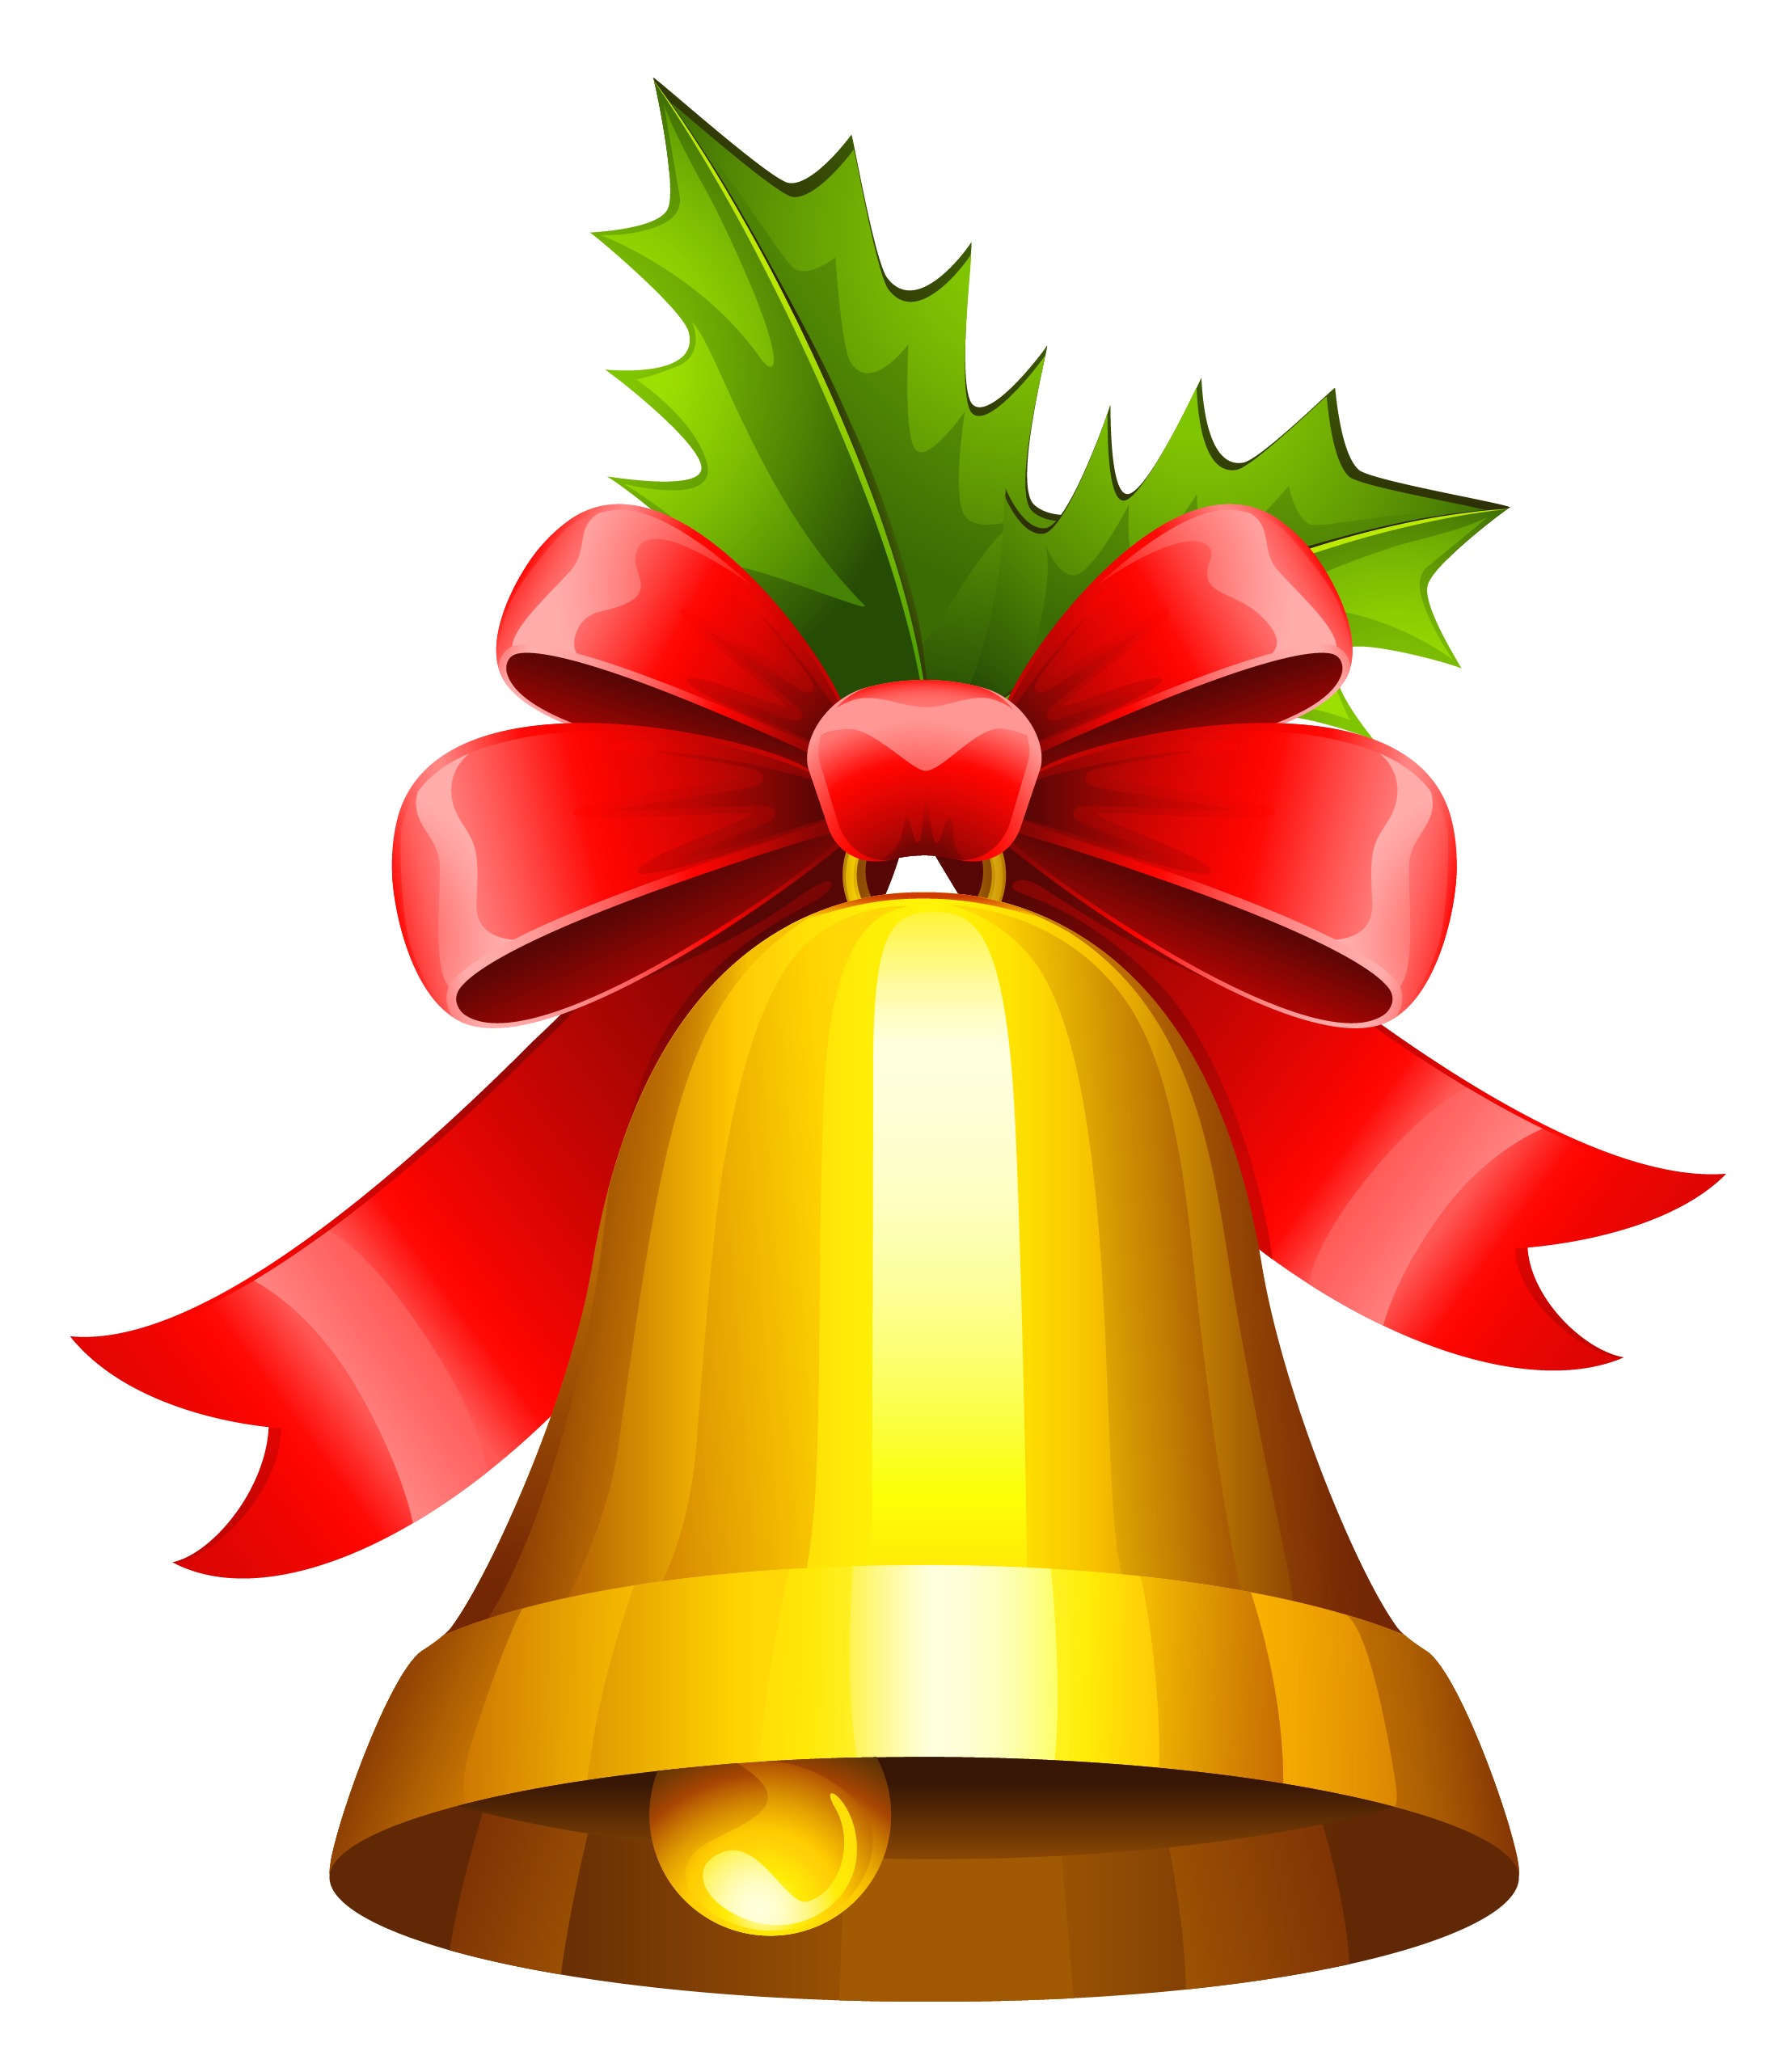 School bell png no background. Christmas transparent clipart gallery